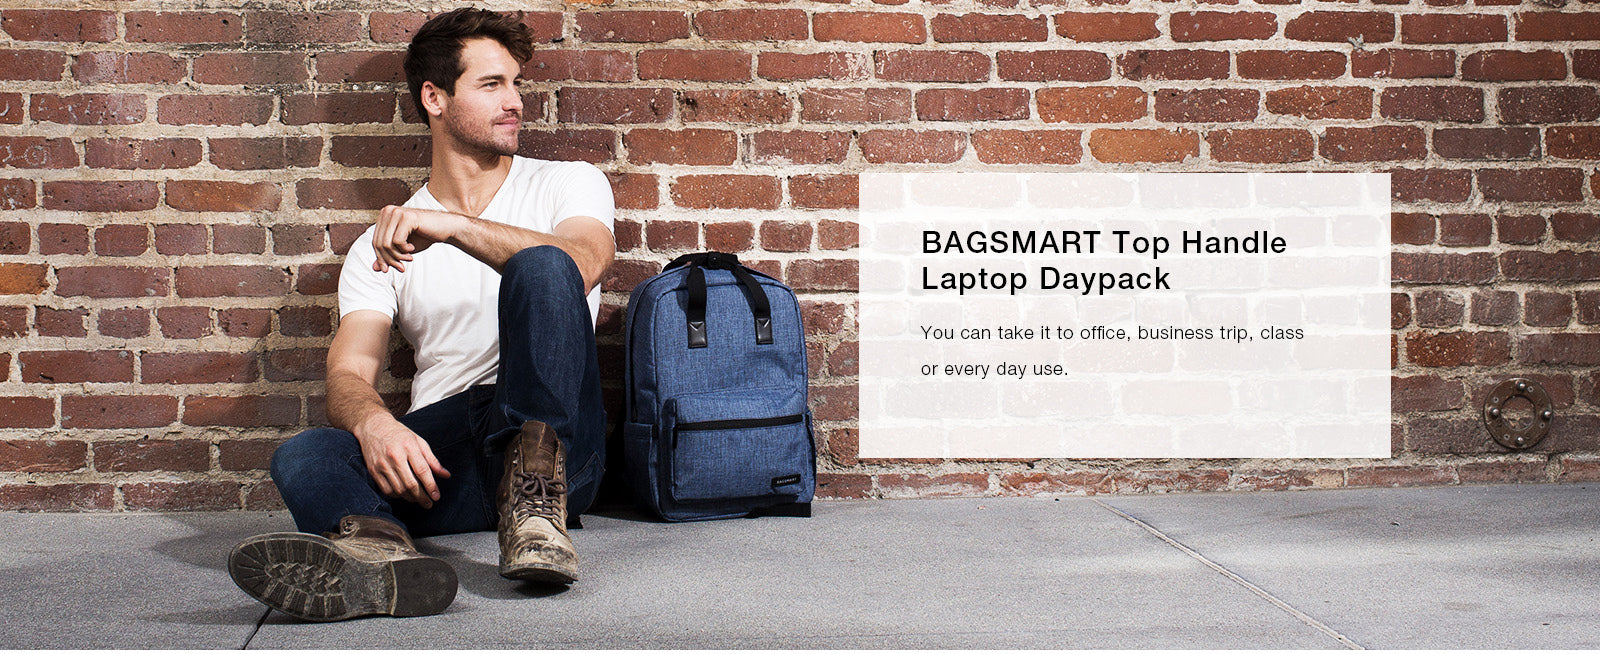 BAGSMART Laptop Backpack Water Resistant Casual School Business Travel Daypack Fits 14 Inch Laptops Tablets